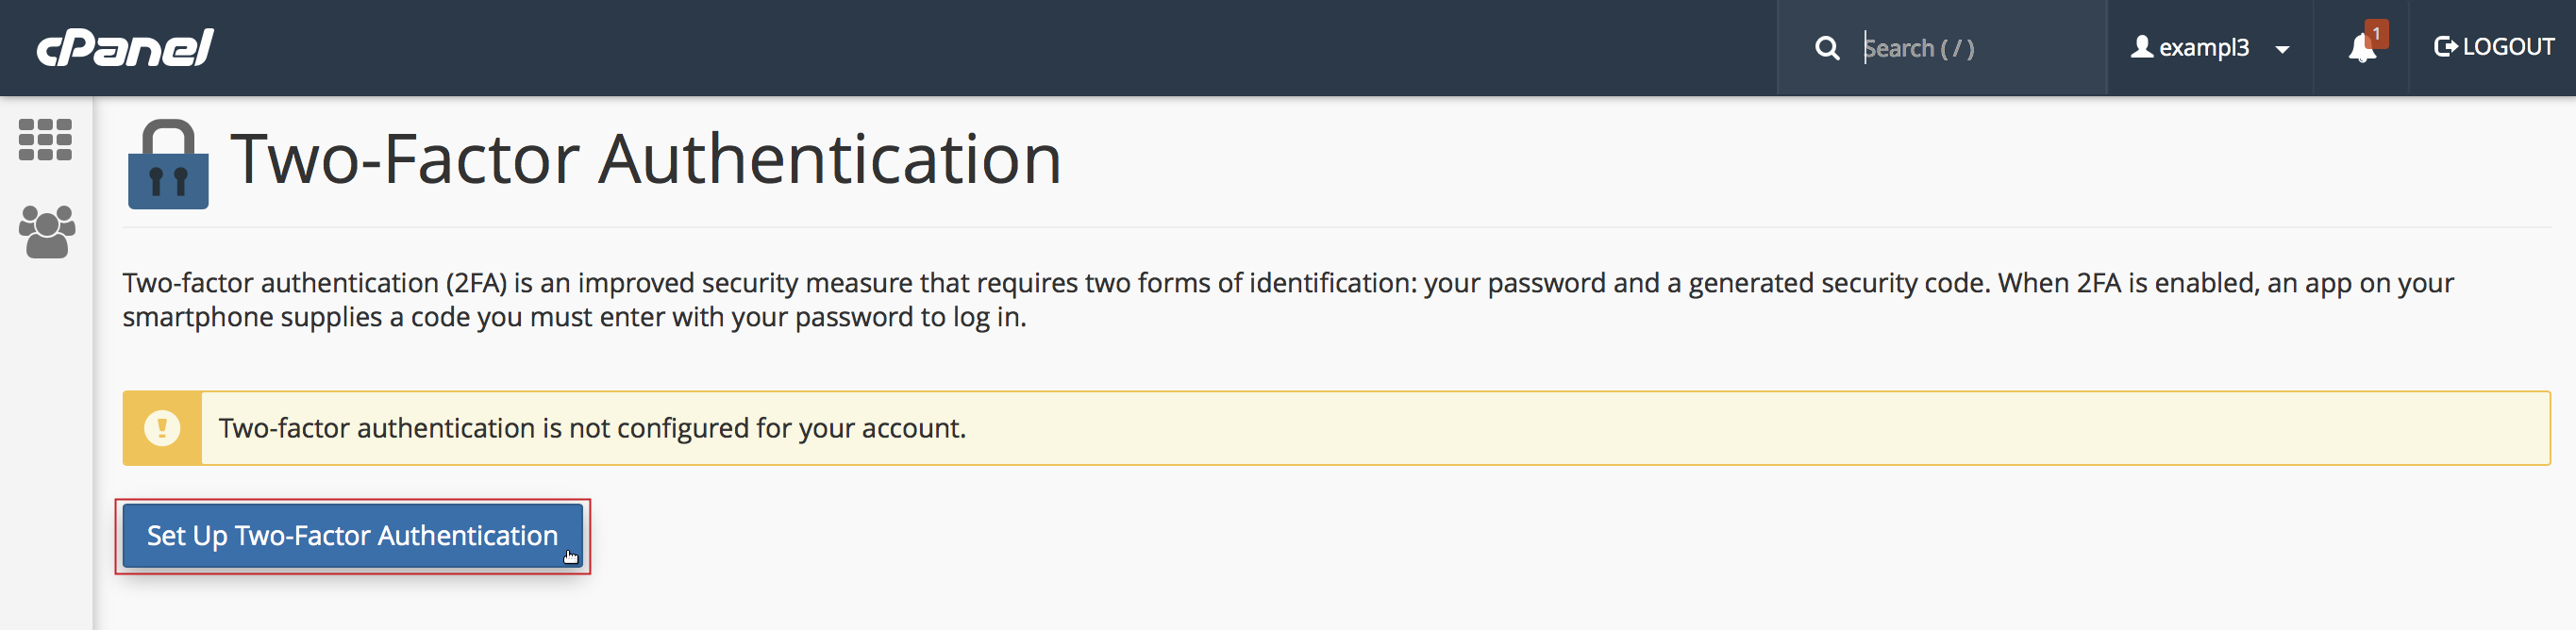 cPanel Two-Factor Authentication with Set Up Two-Factor Authentication button highlighted.